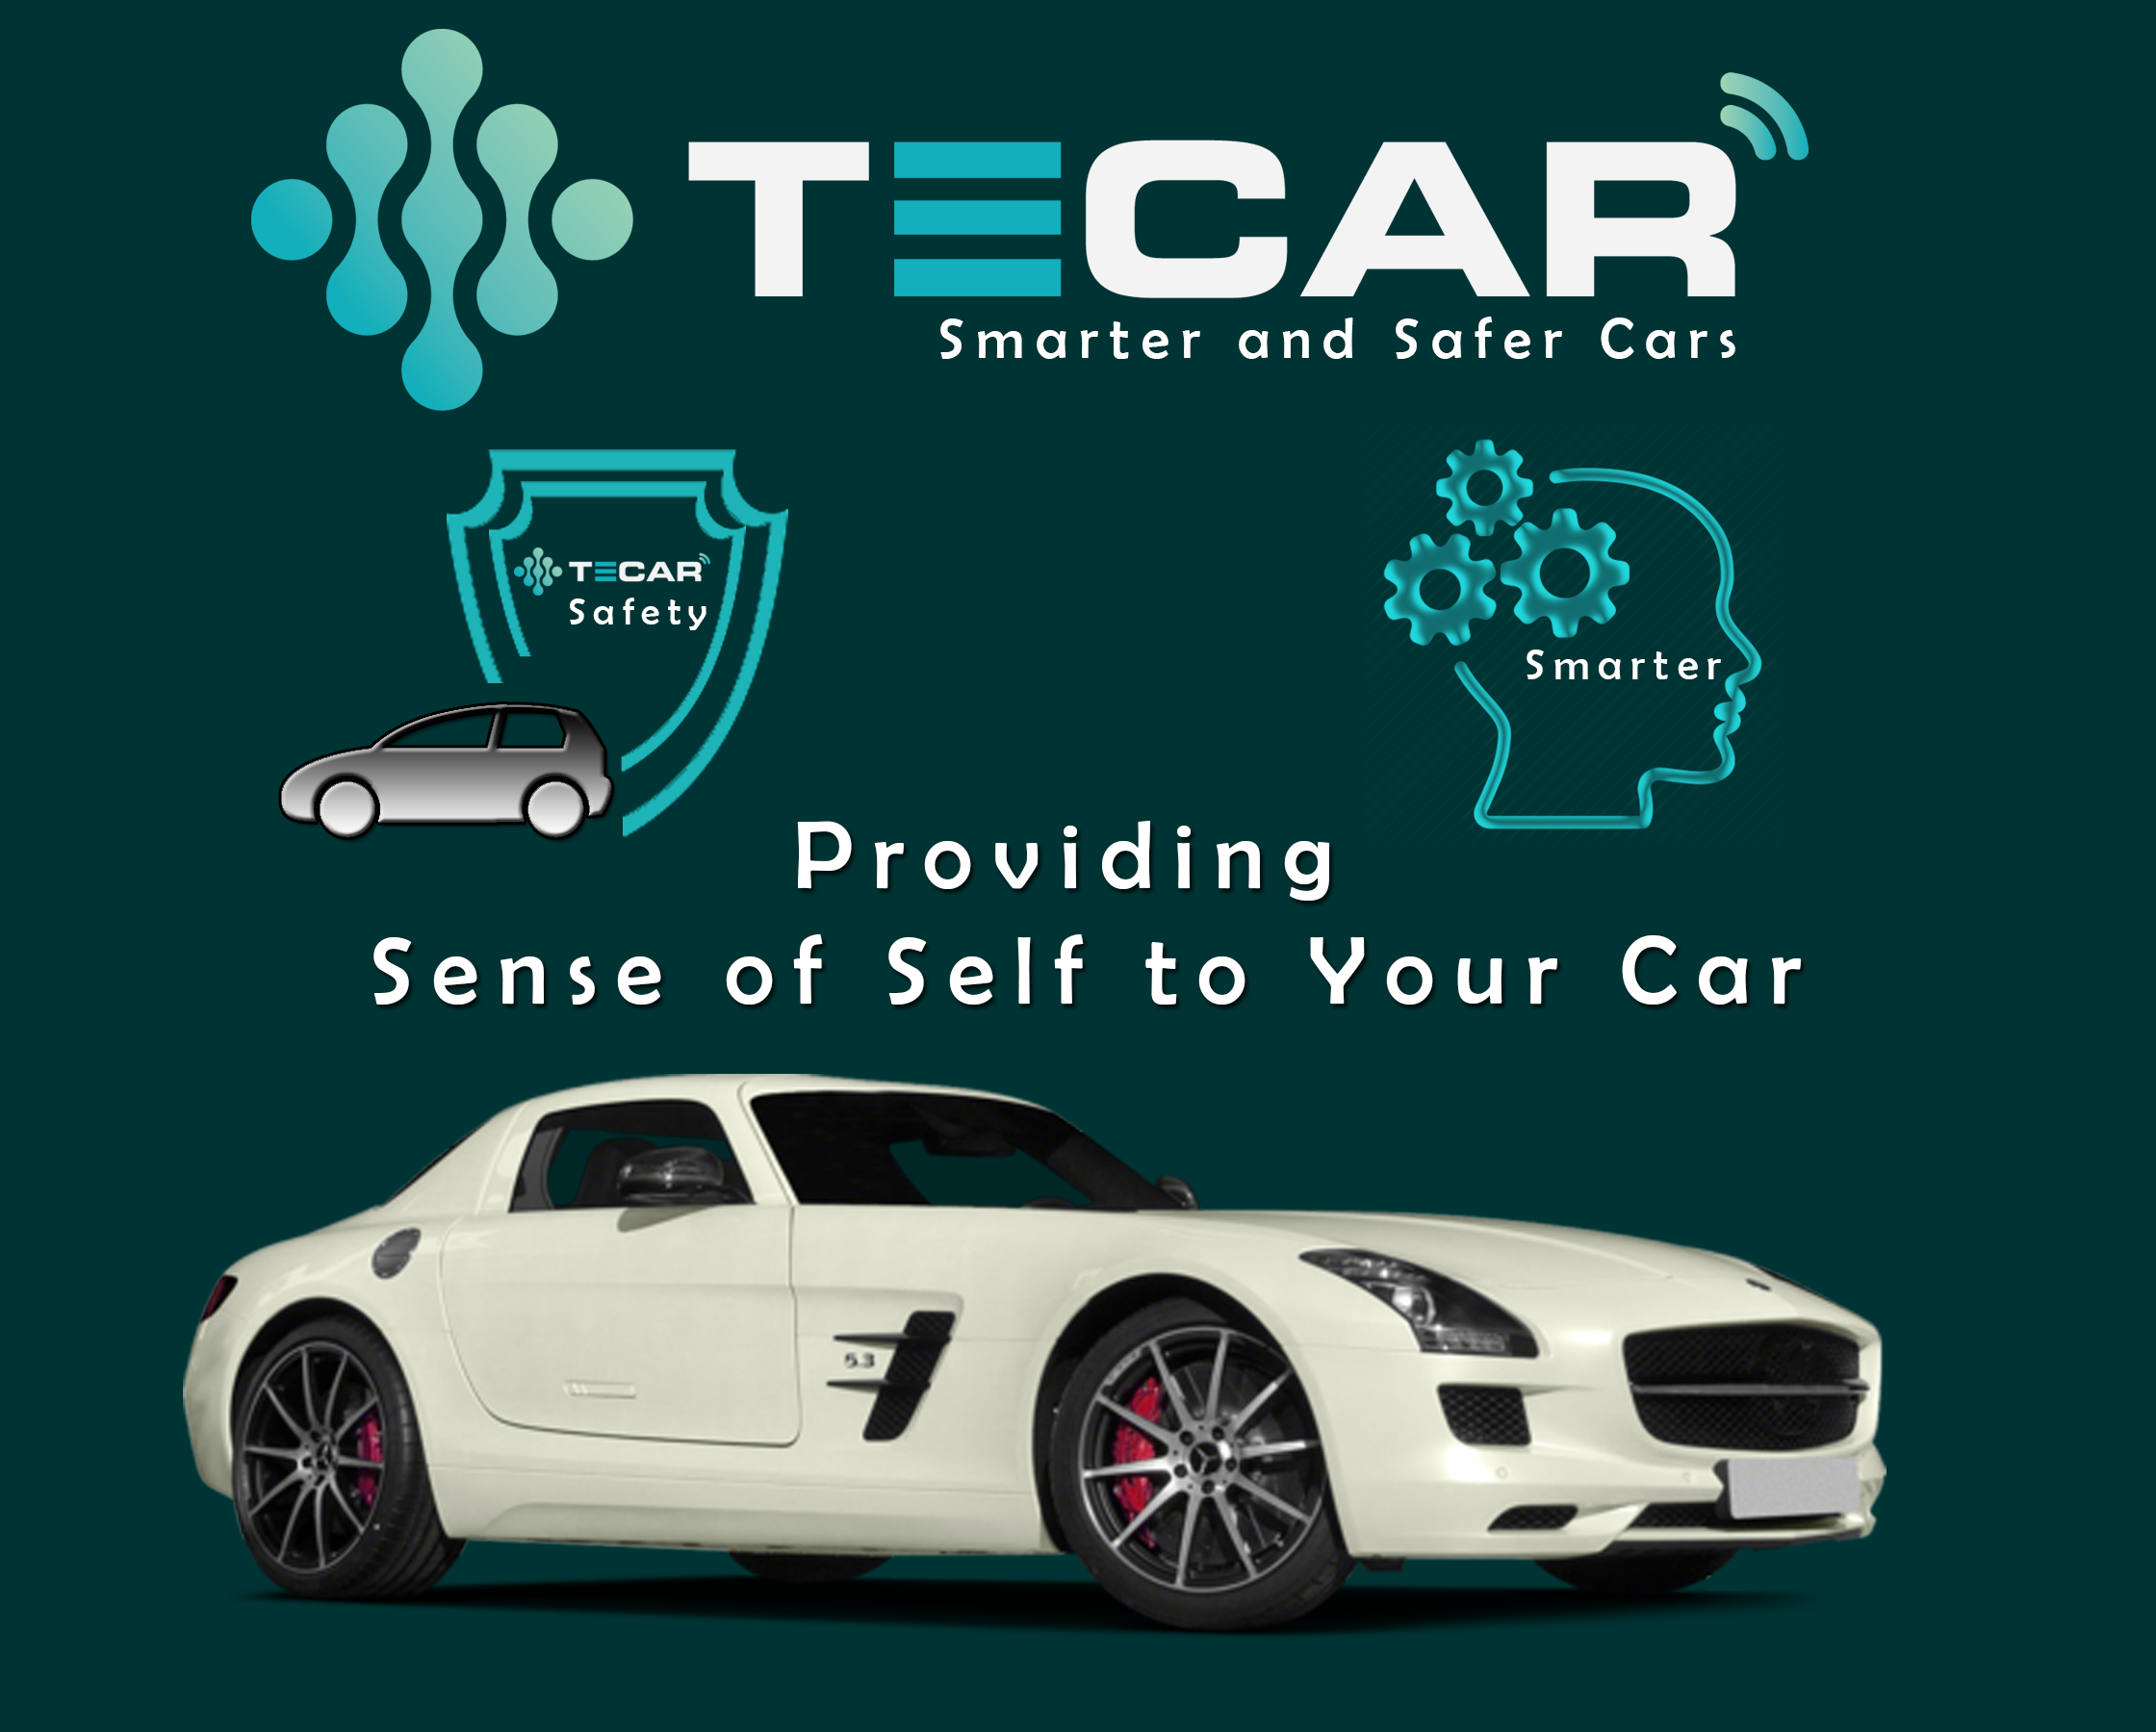 Tecar Smarter And Safer Cars Tecar Carapp Cars Safe Cars Car App Car Safety